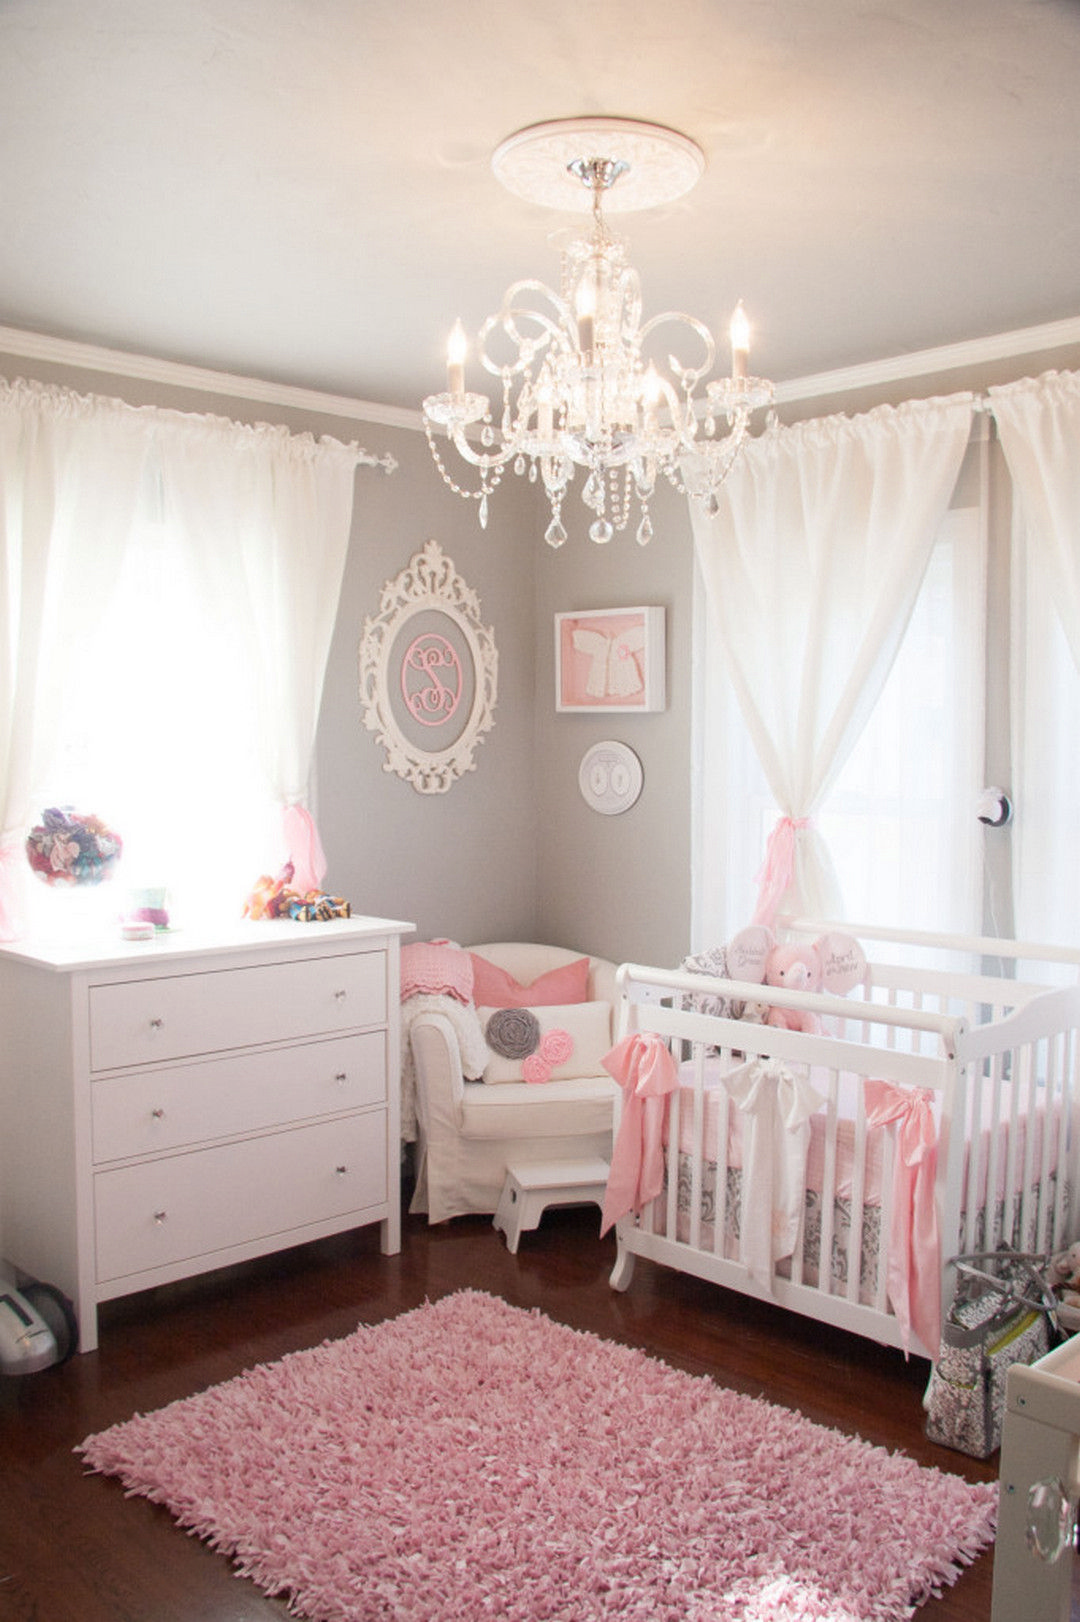 Elegant Project Nursery   Tiny Pink And Gray Nursery. Despite Our Tiny Room And  Budget, I Was Determined To Give Our Baby The Room She Deserved.